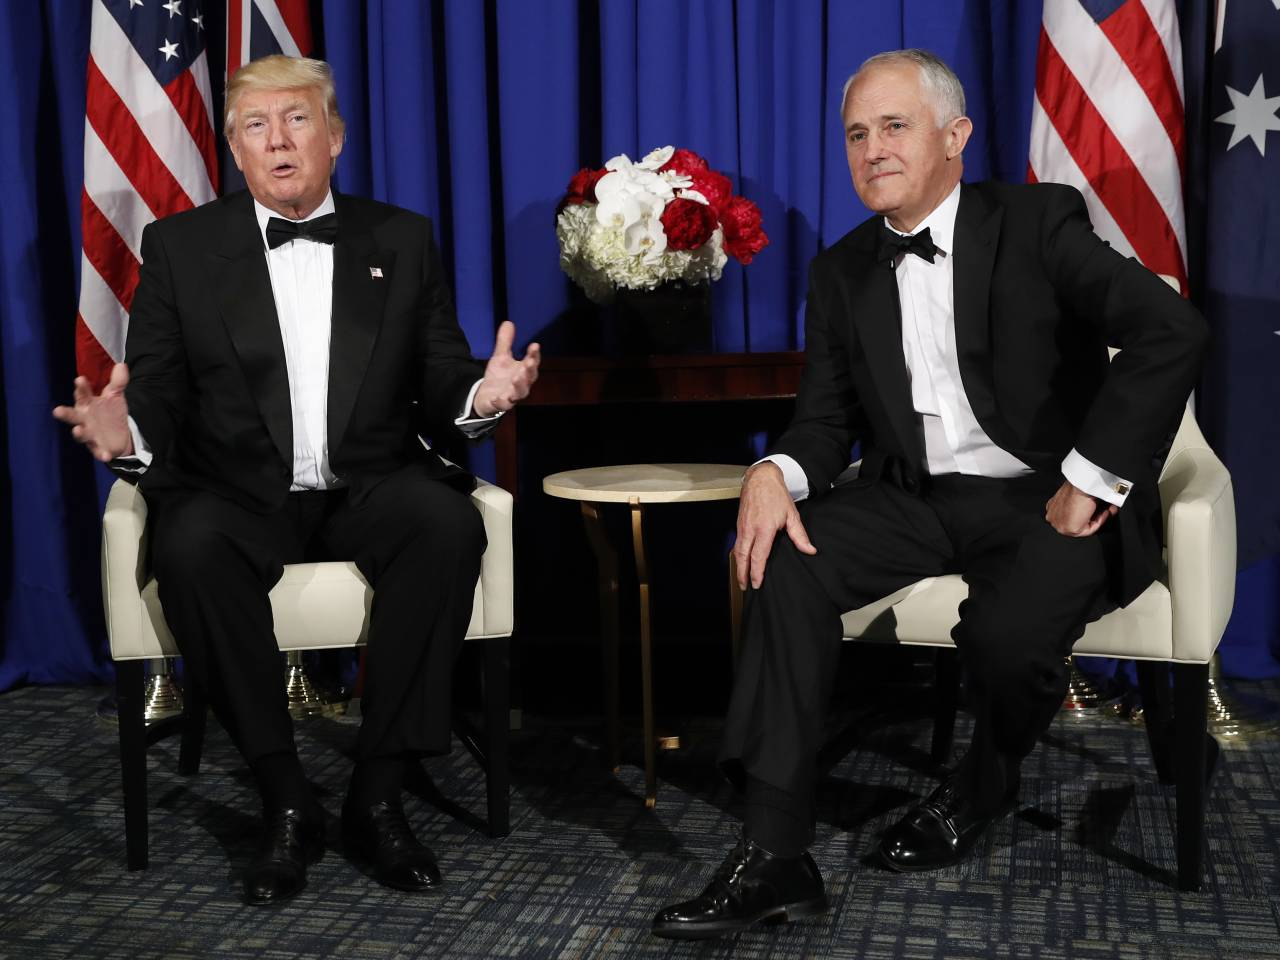 Malcolm Turnbull says Donald Trump like 'family' after pair's first meeting